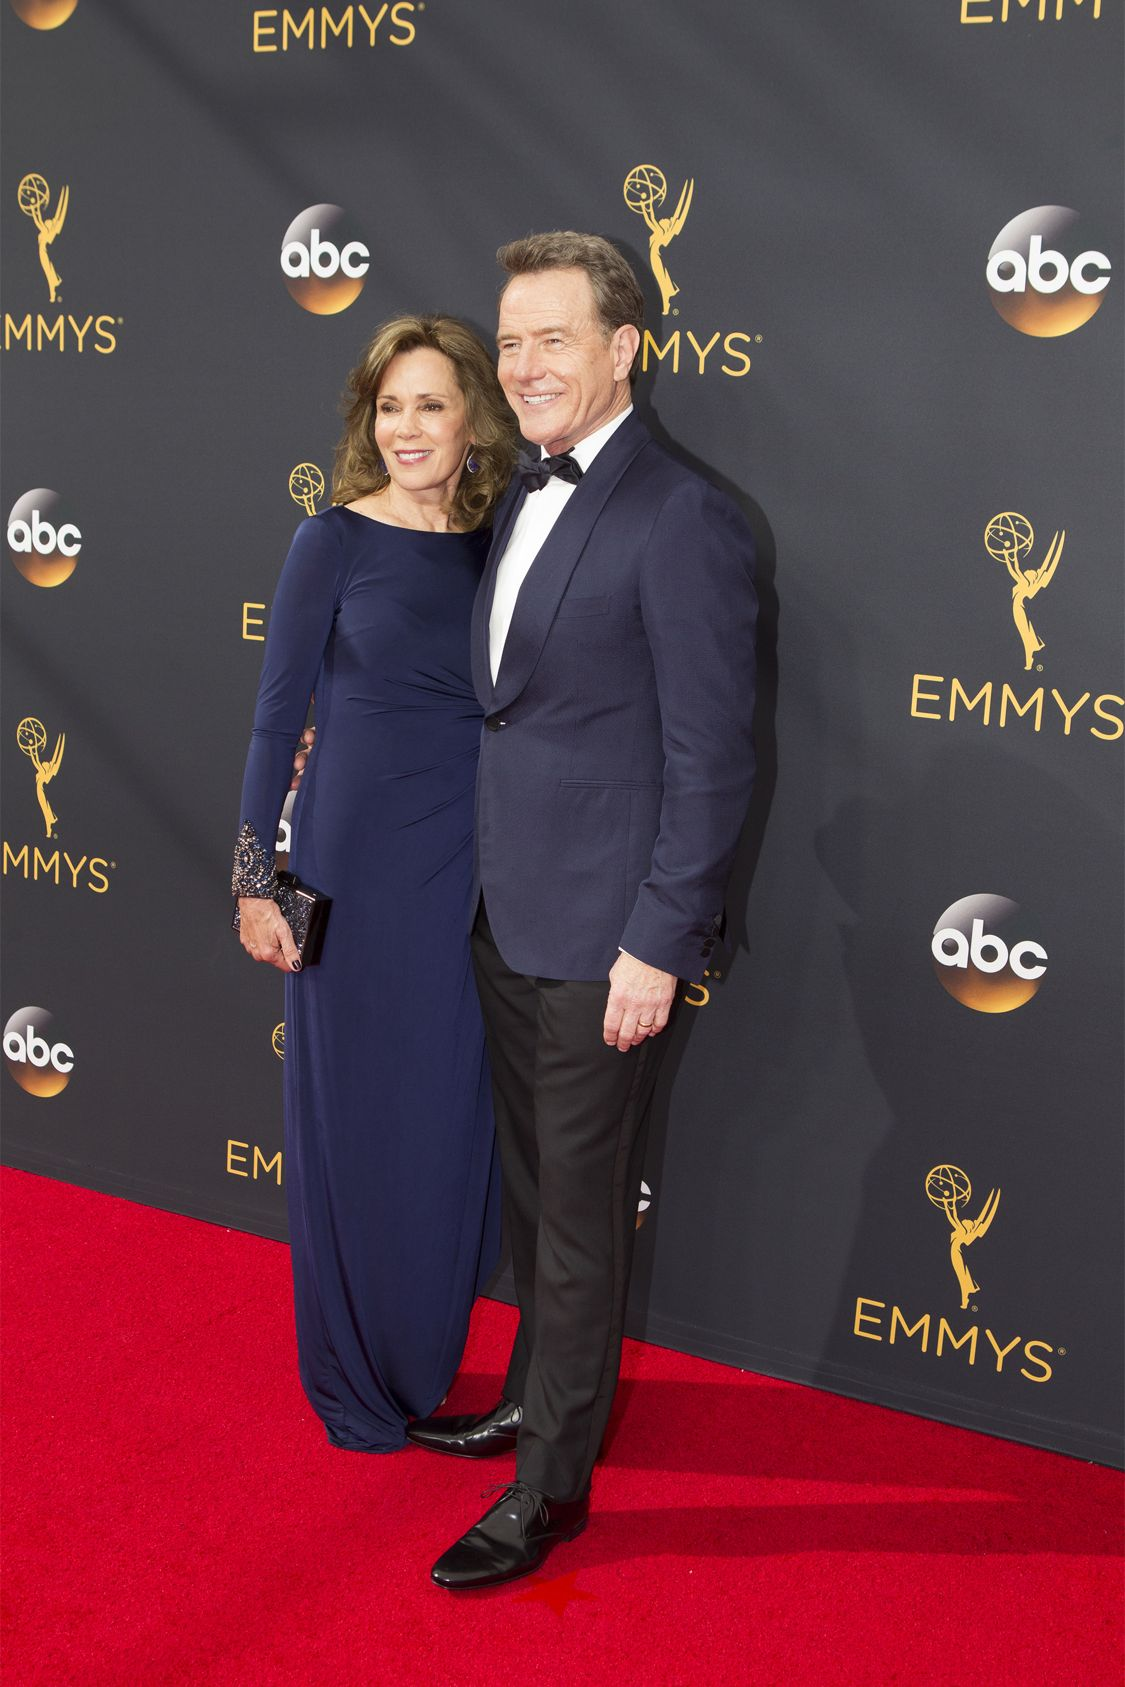 """THE 68TH EMMY(r) AWARDS - """"The 68th Emmy Awards"""" broadcasts live from The Microsoft Theater in Los Angeles, Sunday, September 18 (7:00-11:00 p.m. EDT/4:00-8:00 p.m. PDT), on ABC and is hosted by Jimmy Kimmel. (ABC/Rick Rowell) BRYAN CRANSTON"""